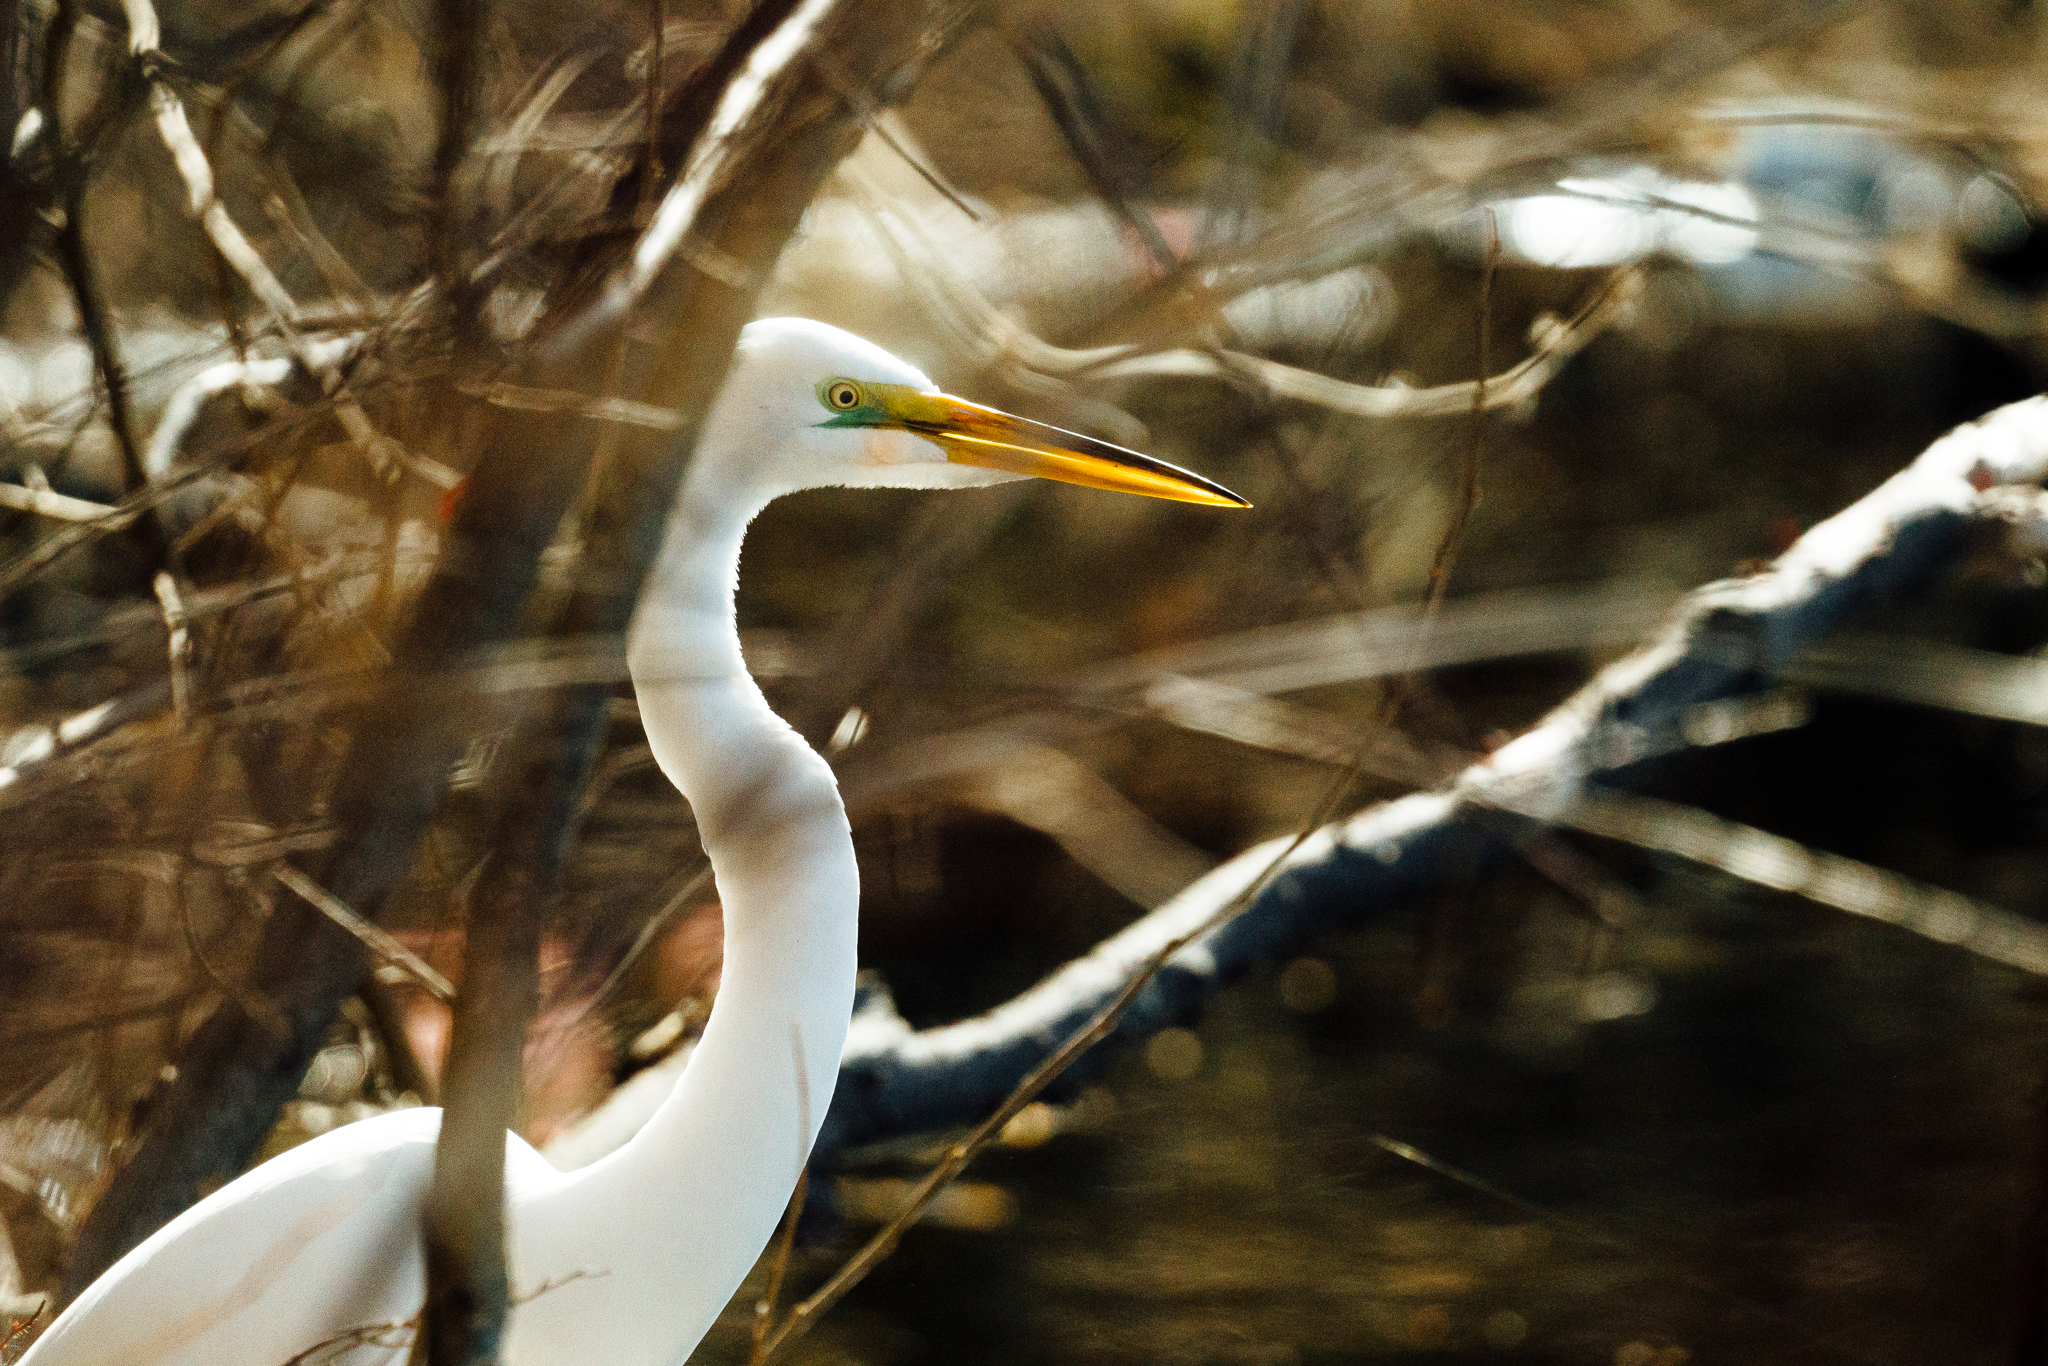 An egret on the shore of a pond by wildlife photographer Sara Montour Lewis